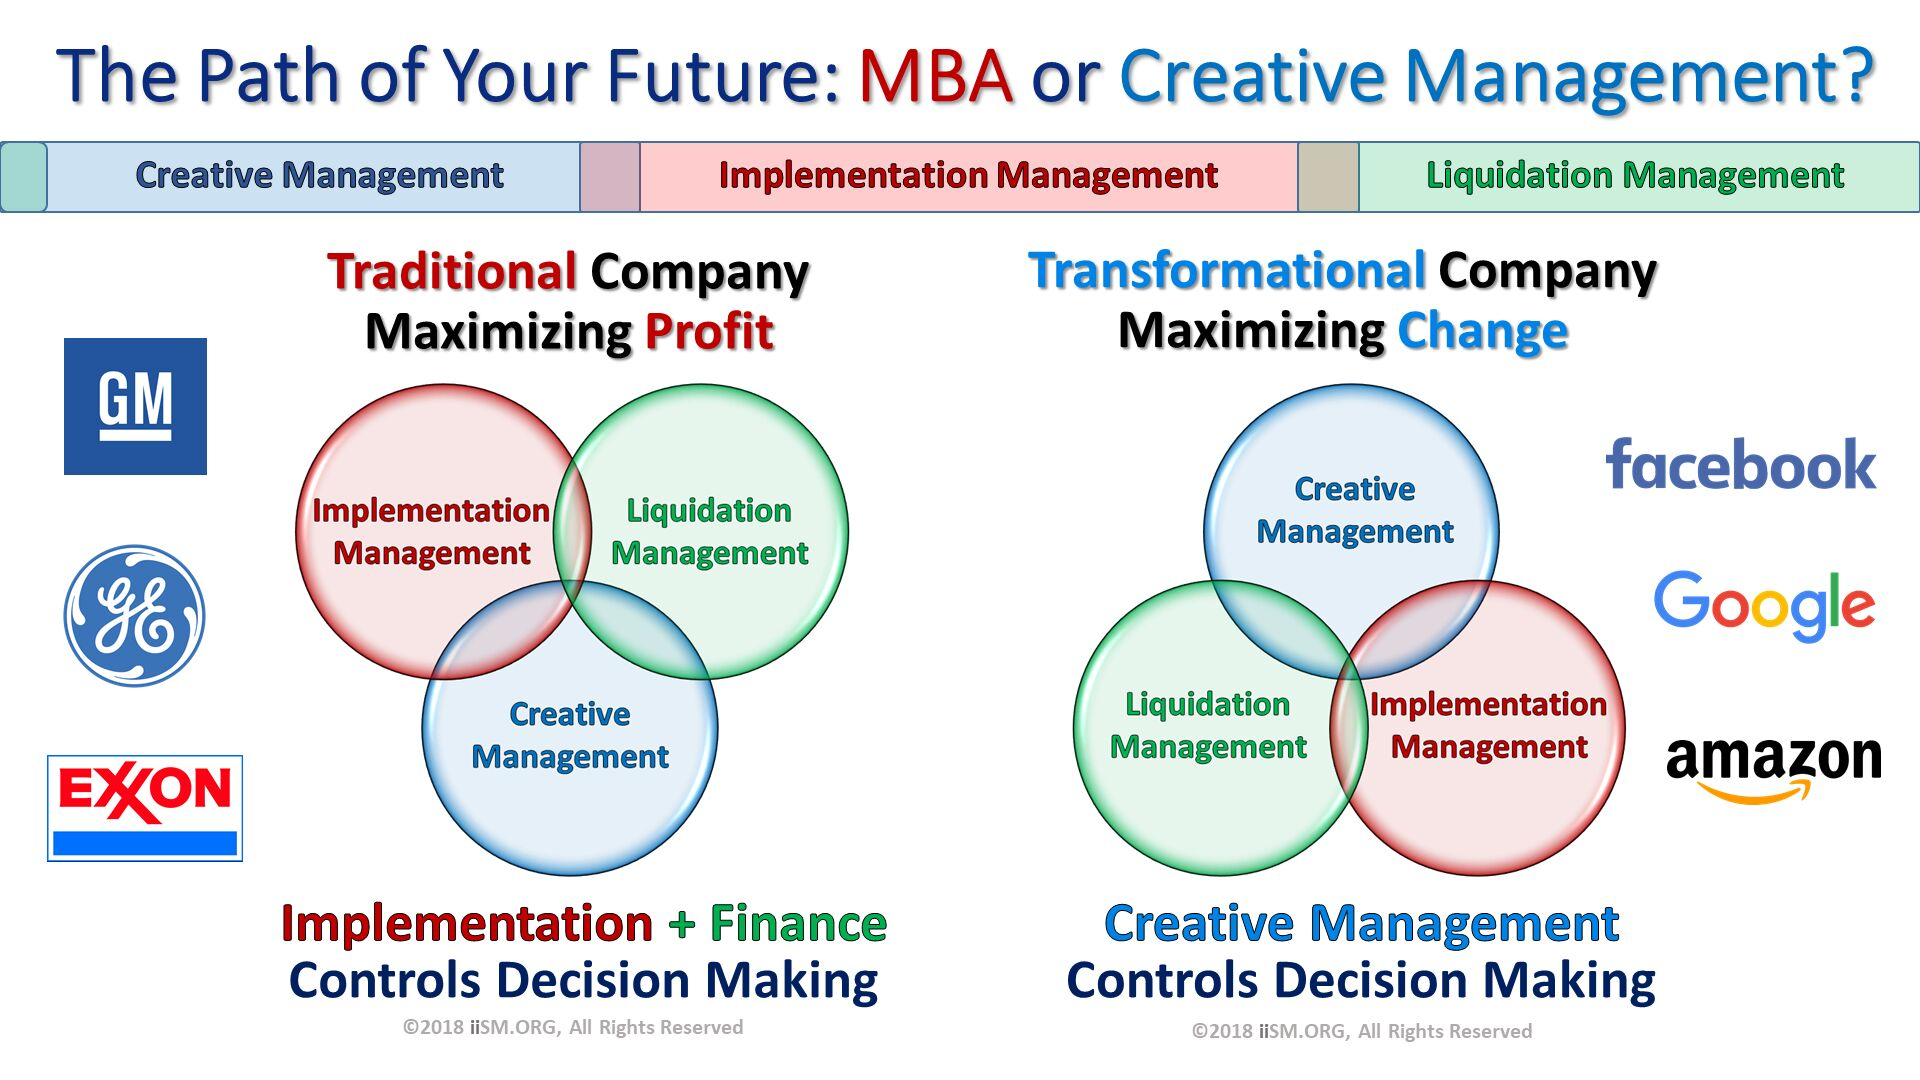 The Path of Your Future: MBA or Creative Management?. Traditional CompanyMaximizing Profit. Transformational CompanyMaximizing Change. ©2018 iiSM.ORG, All Rights Reserved. Implementation + Finance Controls Decision Making. Creative Management  Controls Decision Making. ©2018 iiSM.ORG, All Rights Reserved.